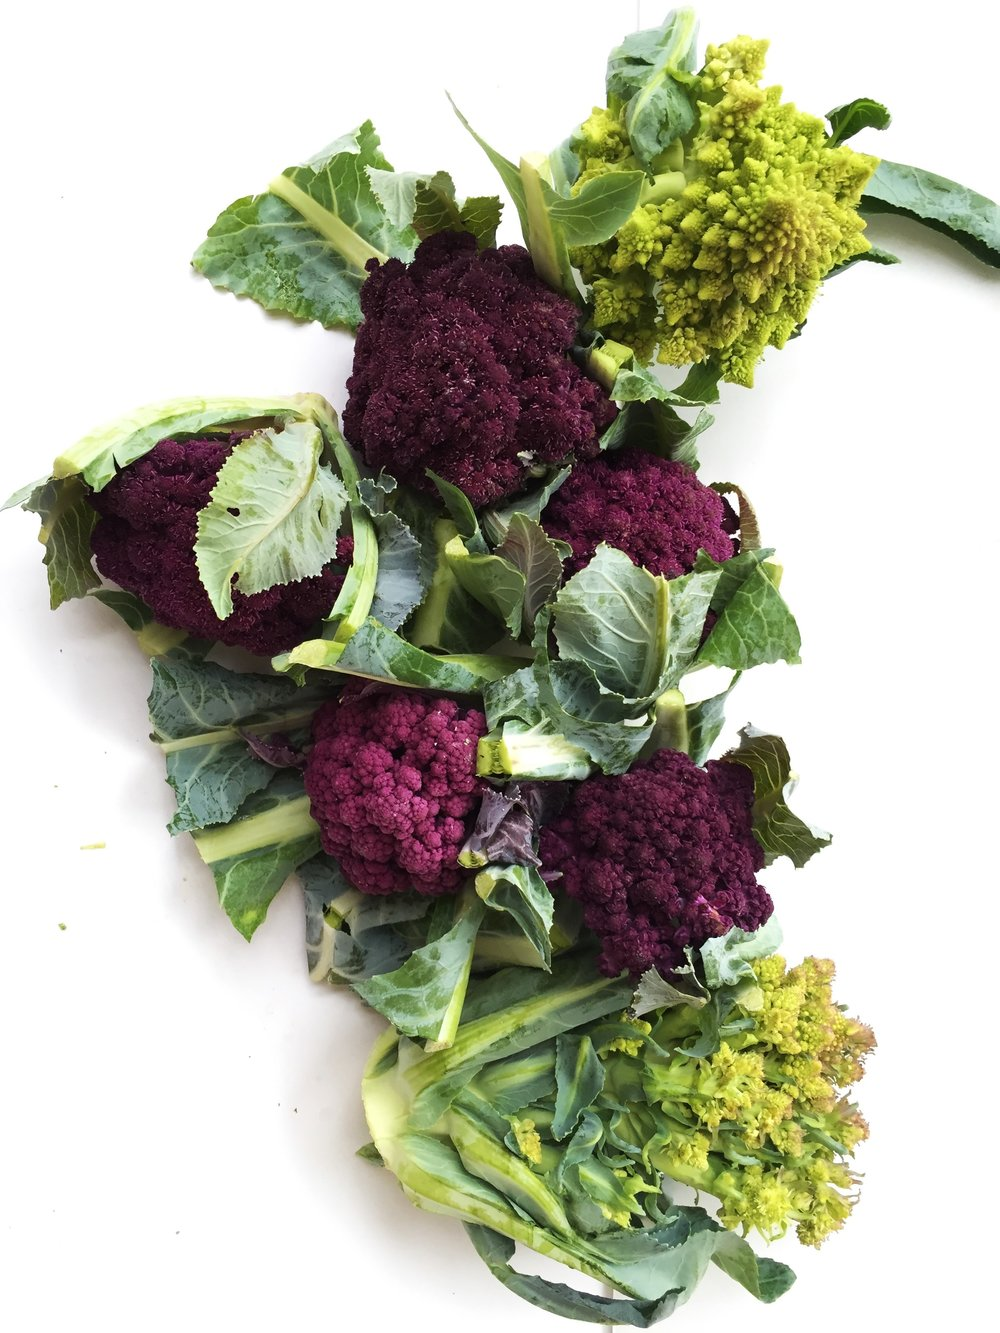 Purple cauliflower and romanesco from my CSA in early July